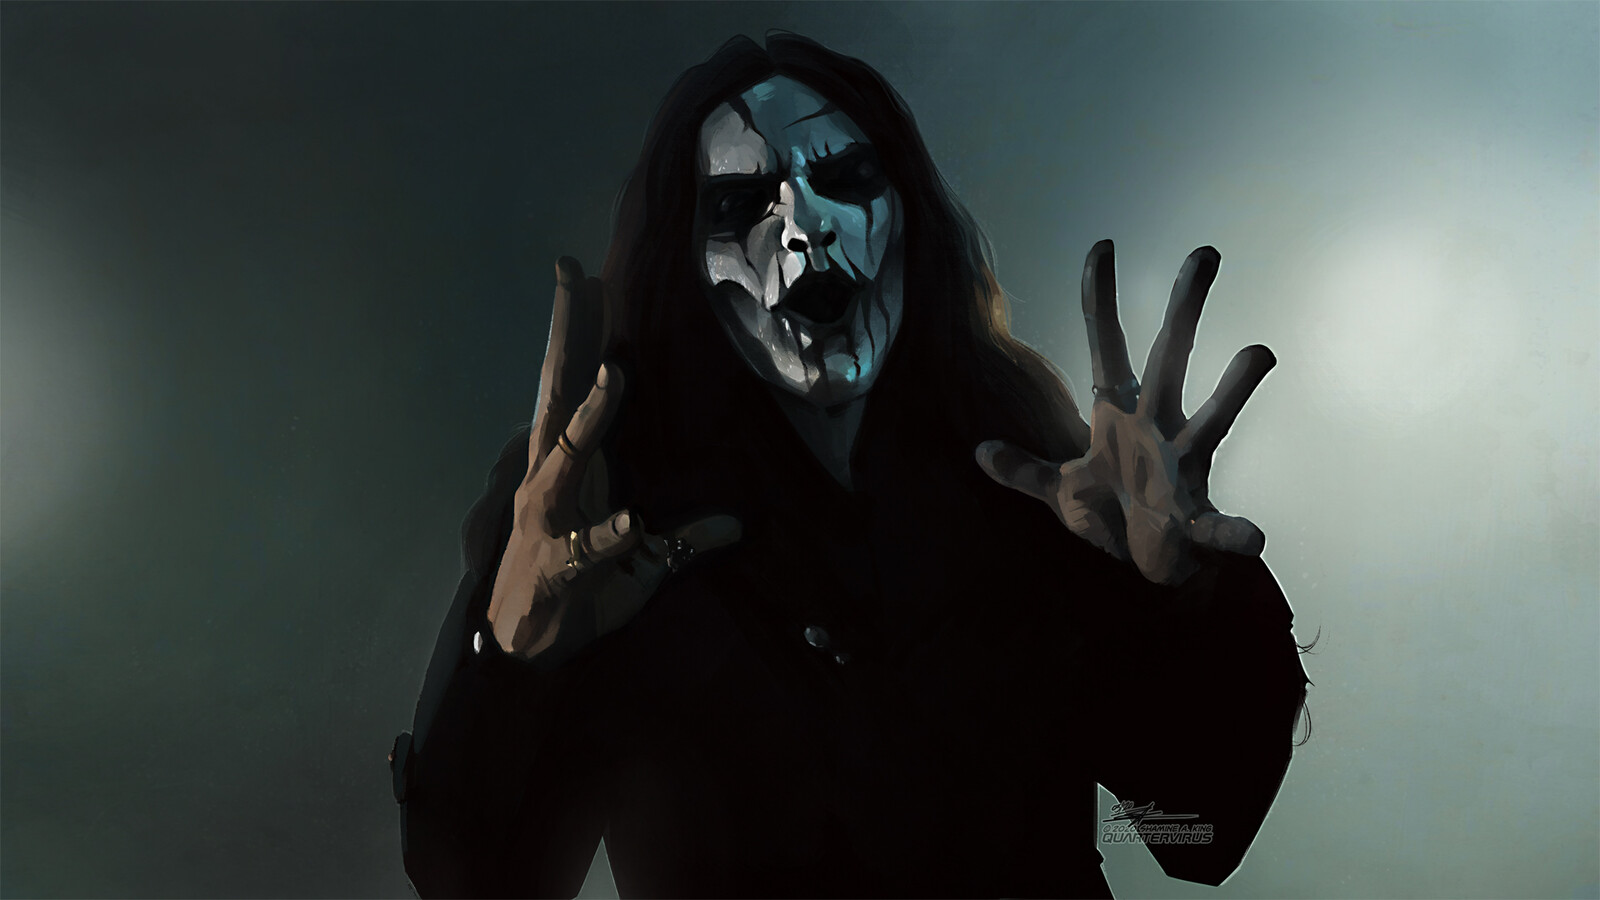 Everyone already knows I love drawing hands... turns out I like painting them as well.  Based on a still from Carach Angren's 'Charles Francis Coghlan': https://www.youtube.com/watch?v=REfg3XDWxlU